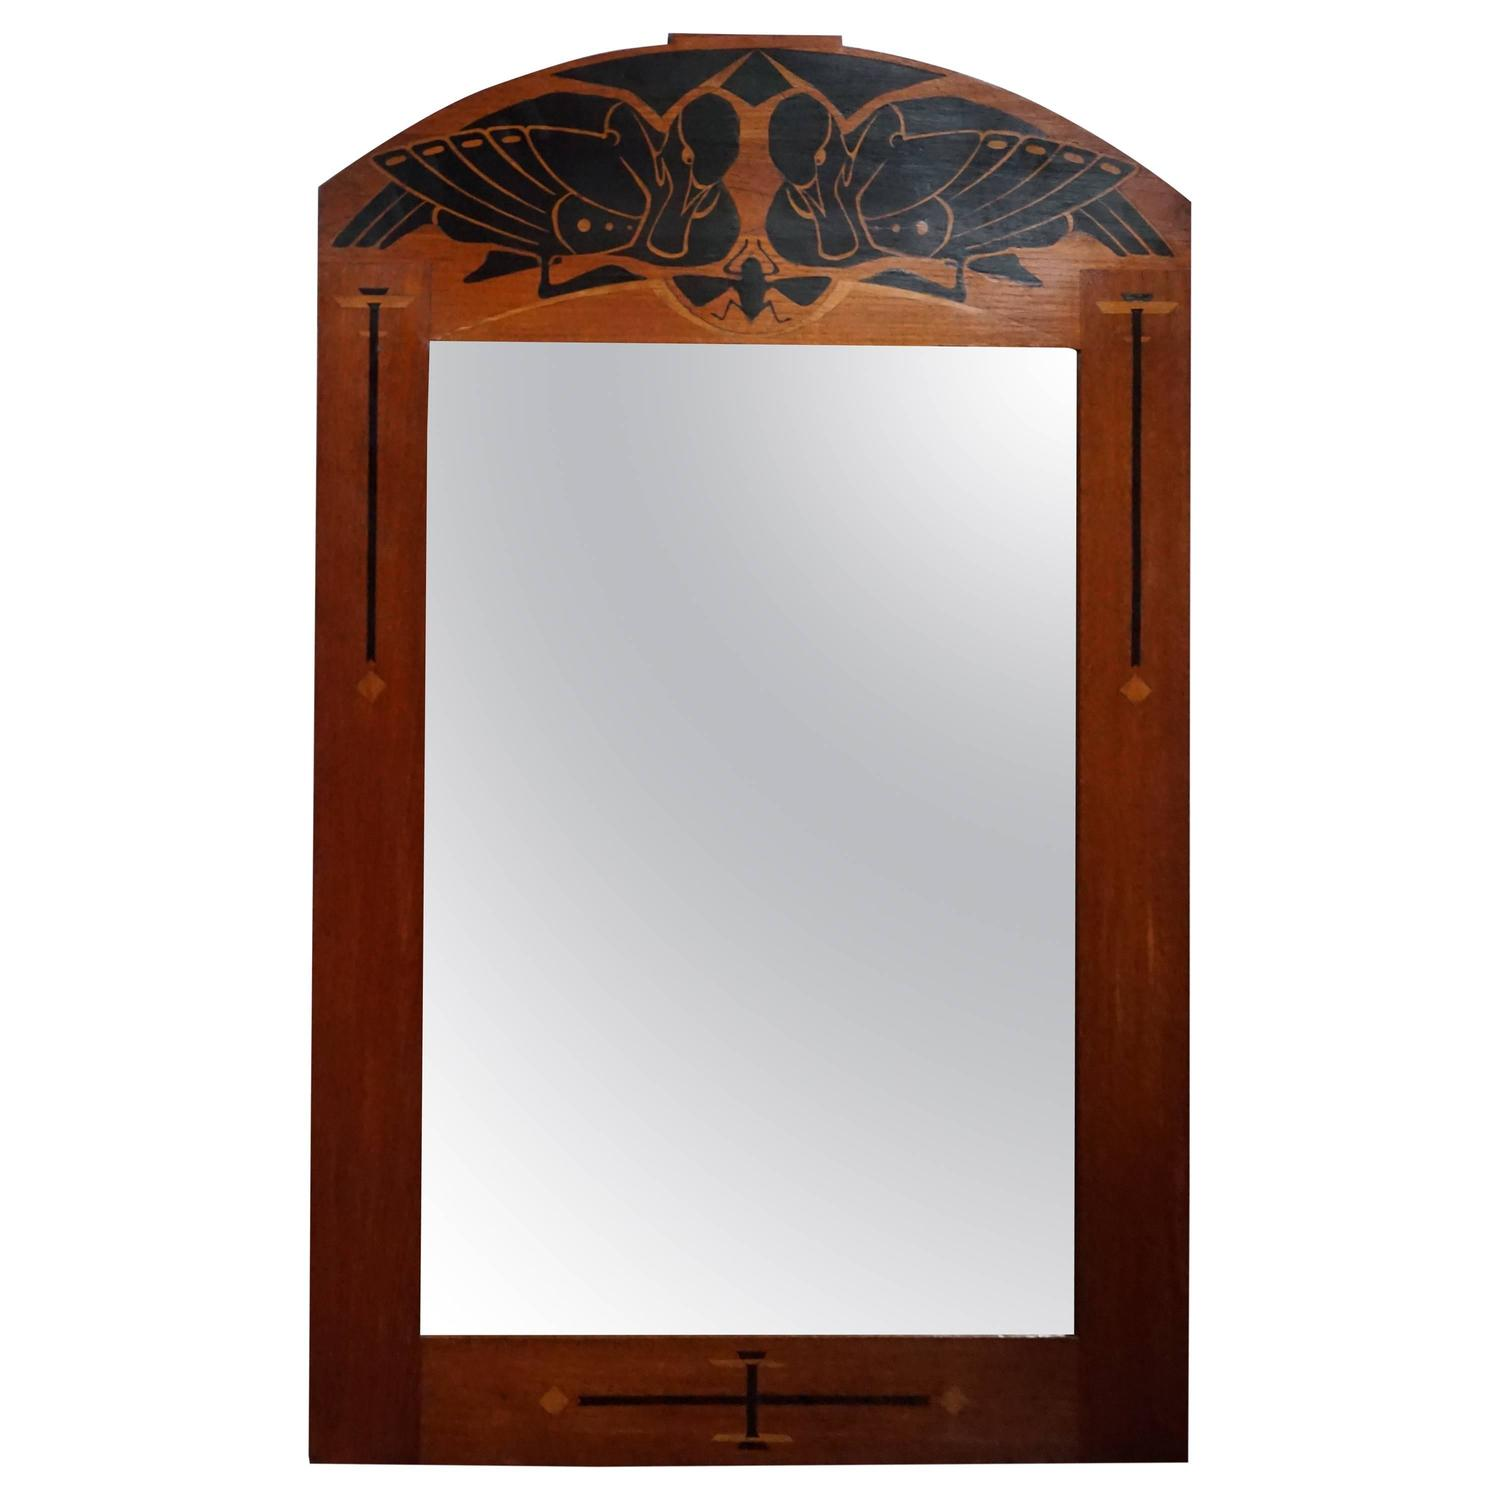 Arts and crafts mirrors - Arts And Crafts Inlaid Mirror With Pair Of Ducks Amp Insect Attr Napoleon